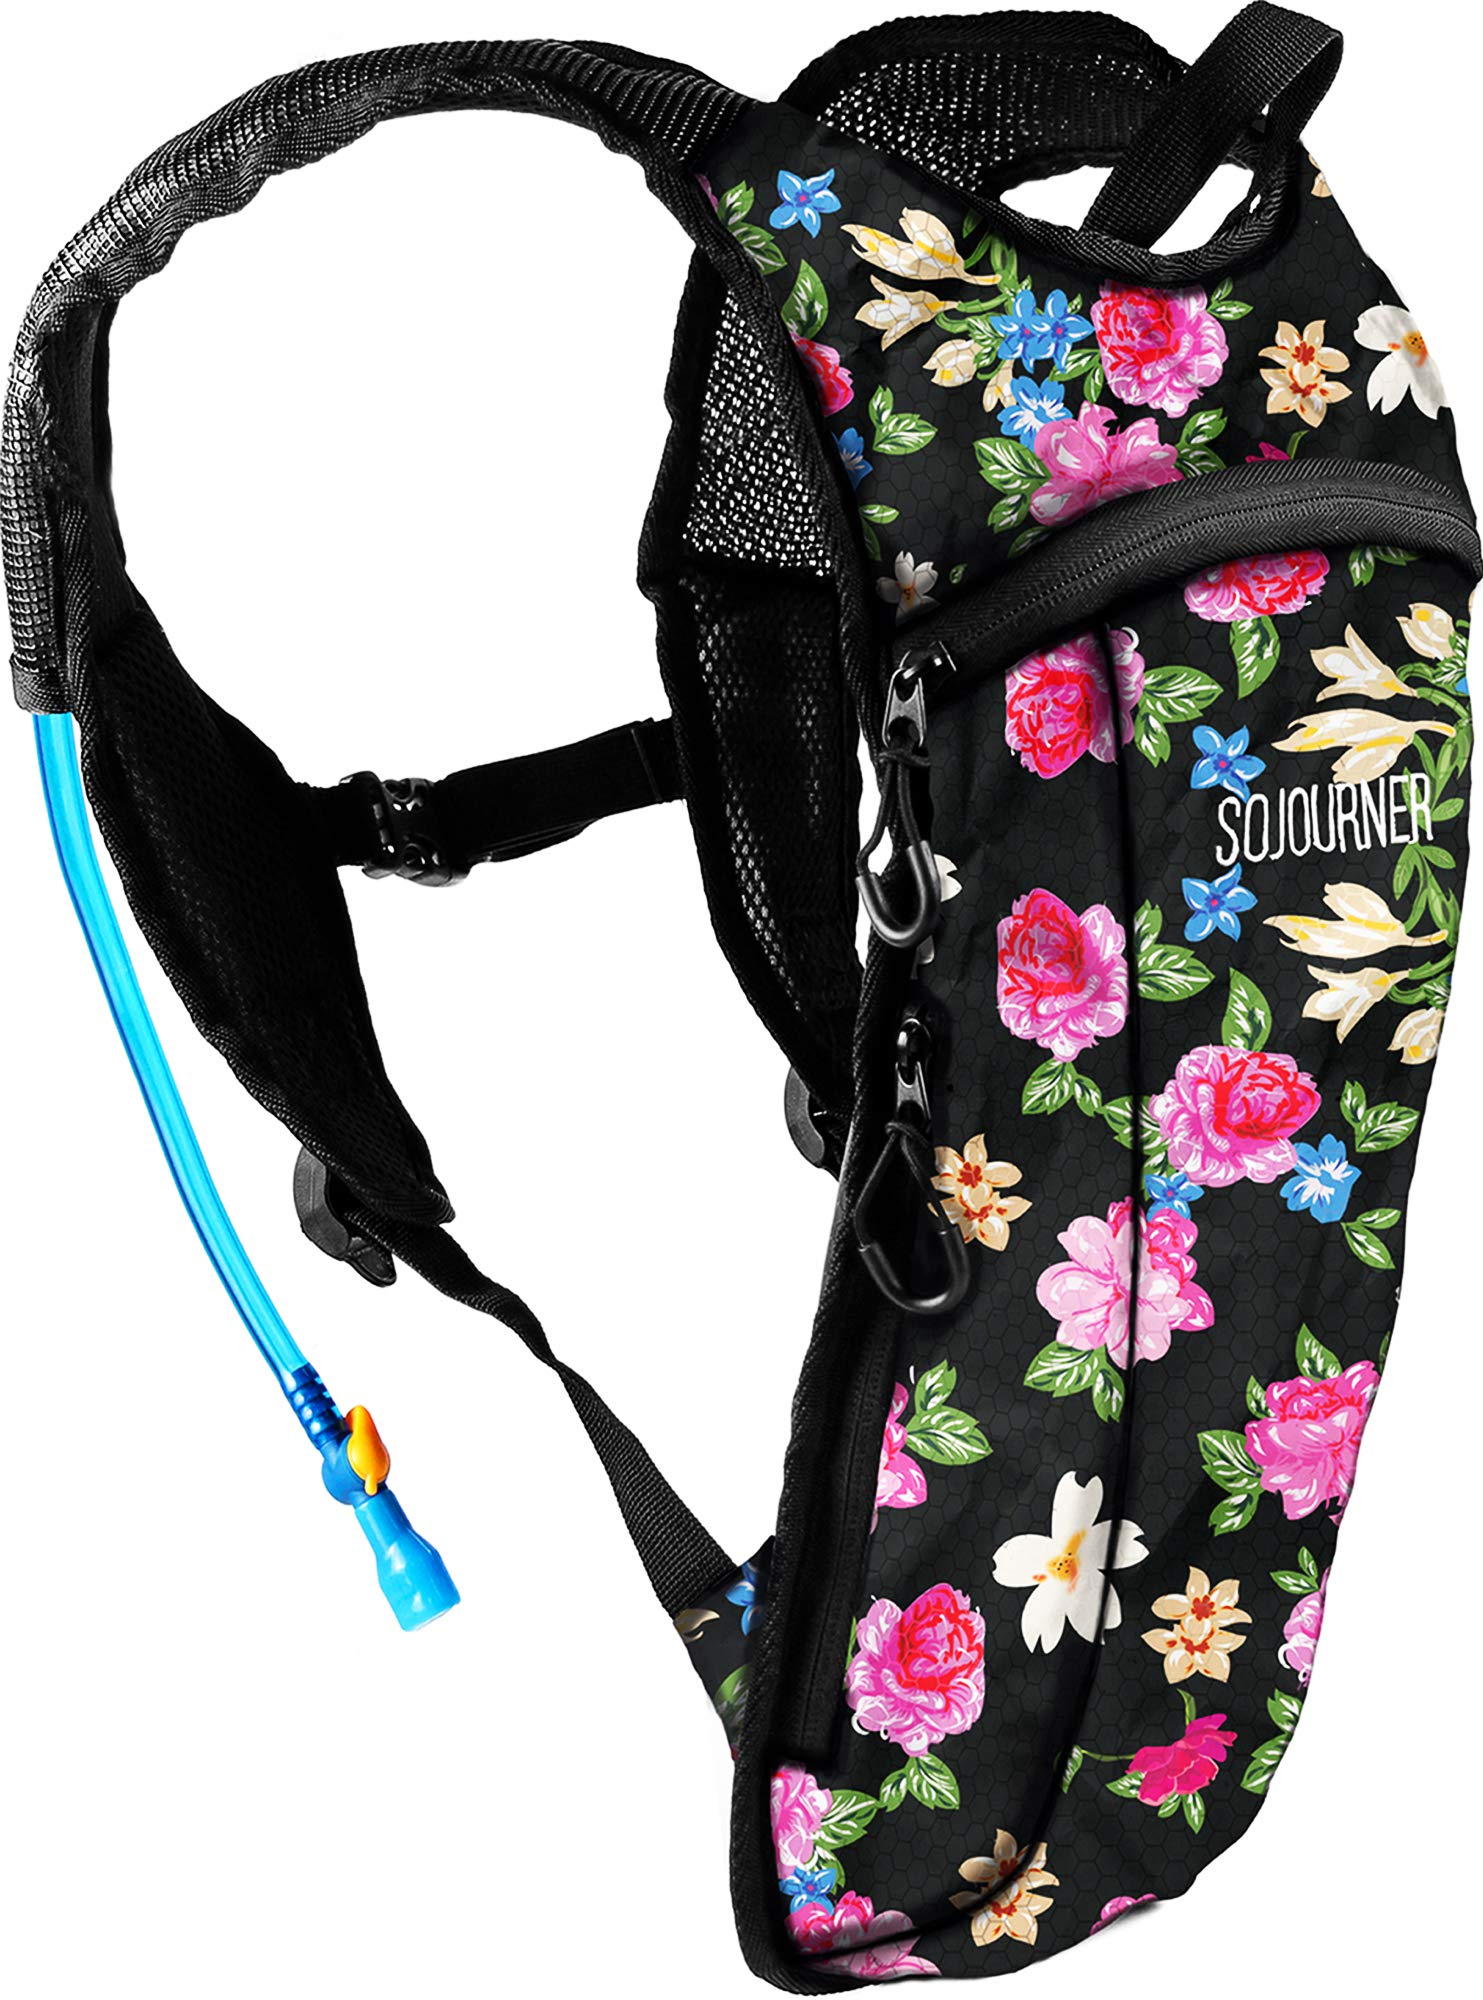 Sojourner Rave Hydration Pack Backpack - 2L Water Bladder Included for Festivals, Raves, Hiking, Biking, Climbing, Running and More (Small) (Floral Traditional) by SoJourner Bags